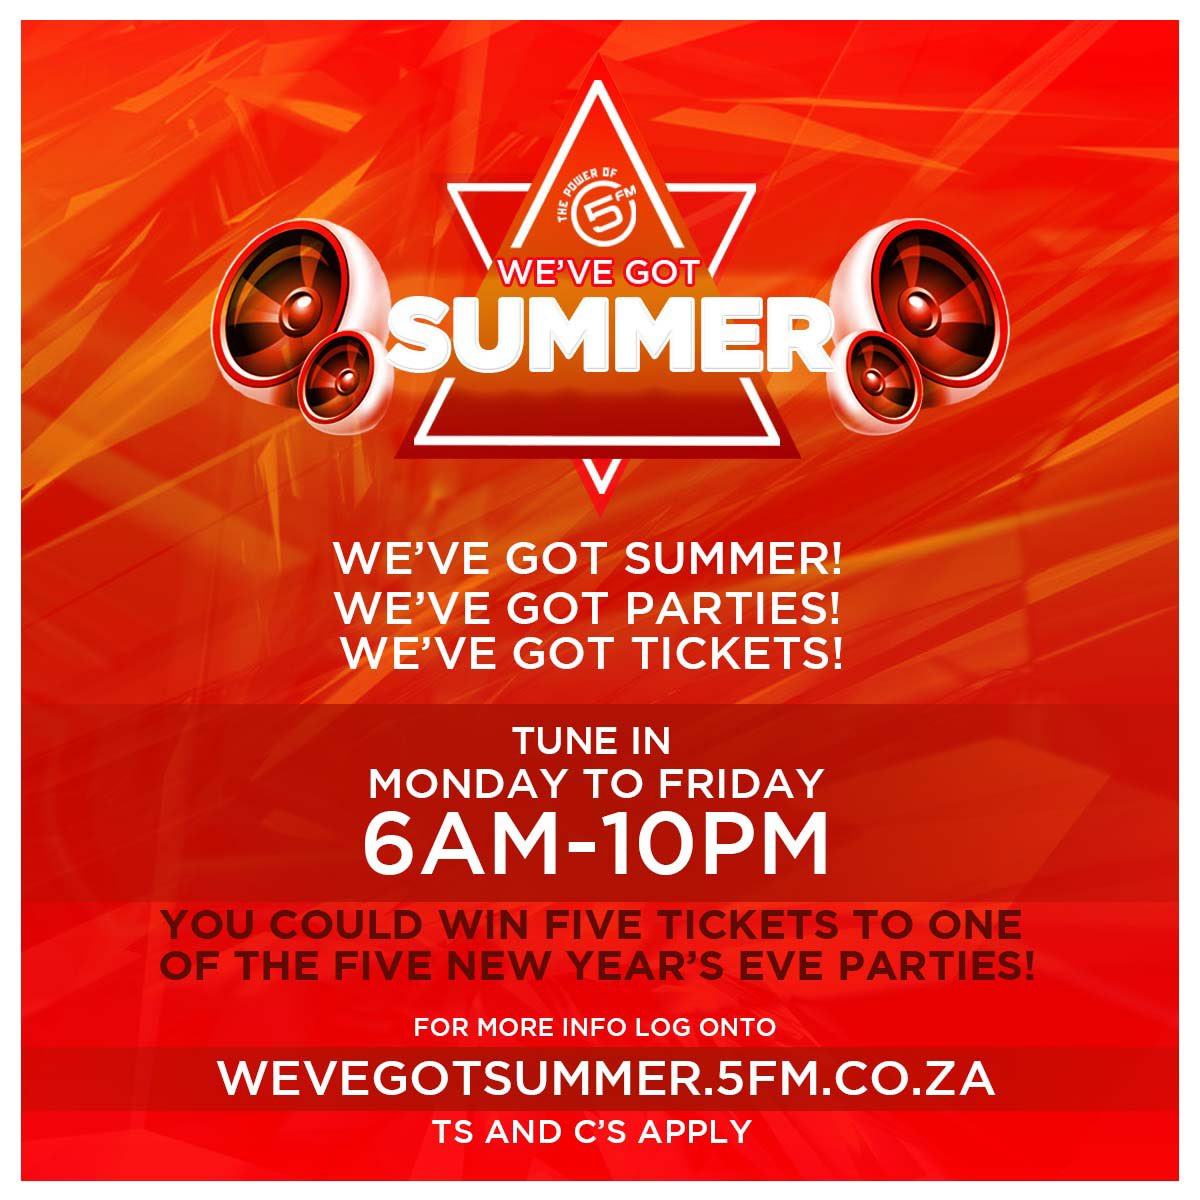 We've still got NYE tickets to give away 👀   Tune in to @HammanTime, @ForbesAndFix, @TheThabootyShow &  t@5fmNightso win tix to one of our 5 NYE parties around SA 🇿🇦  Info:   https://t.co/U44Cr6TLo1#WeGot5ummer